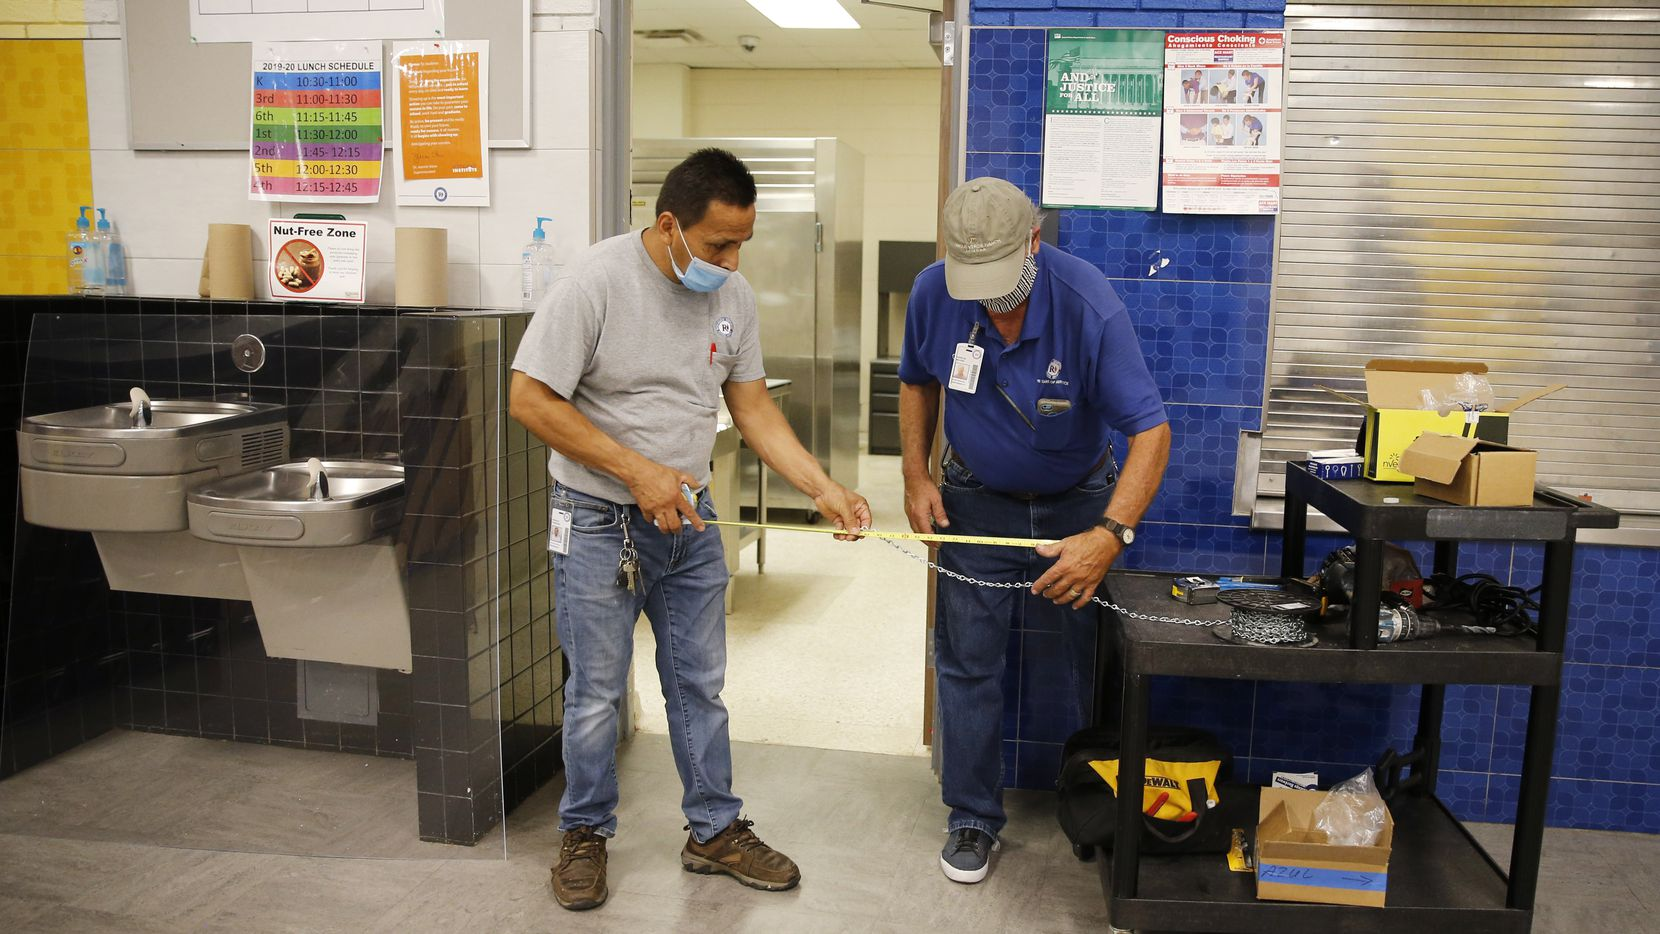 RISD maintenance workers Rogelio Ponciano (left) and Charles De Long measure chain to cut for installing a germ barrier inside the cafeteria at Prestonwood Elementary School in Dallas, on Thursday, July 16, 2020. (Vernon Bryant/The Dallas Morning News)